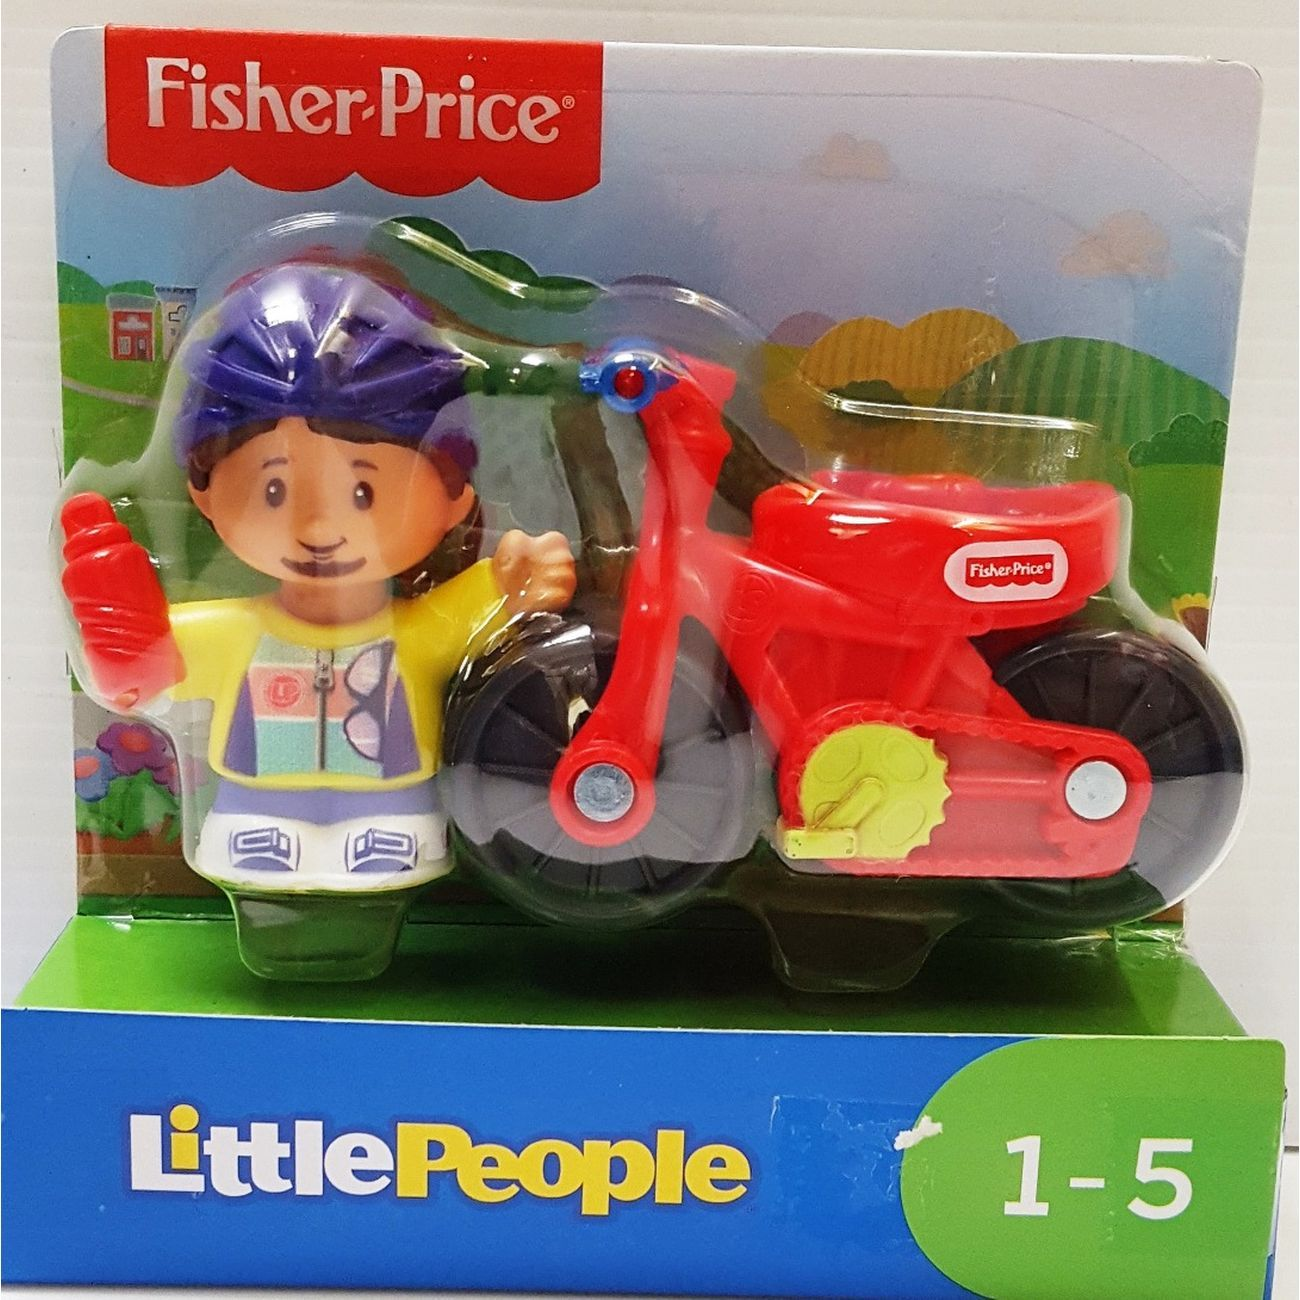 LITTLE PEOPLE 2 PACK - Fisher Price